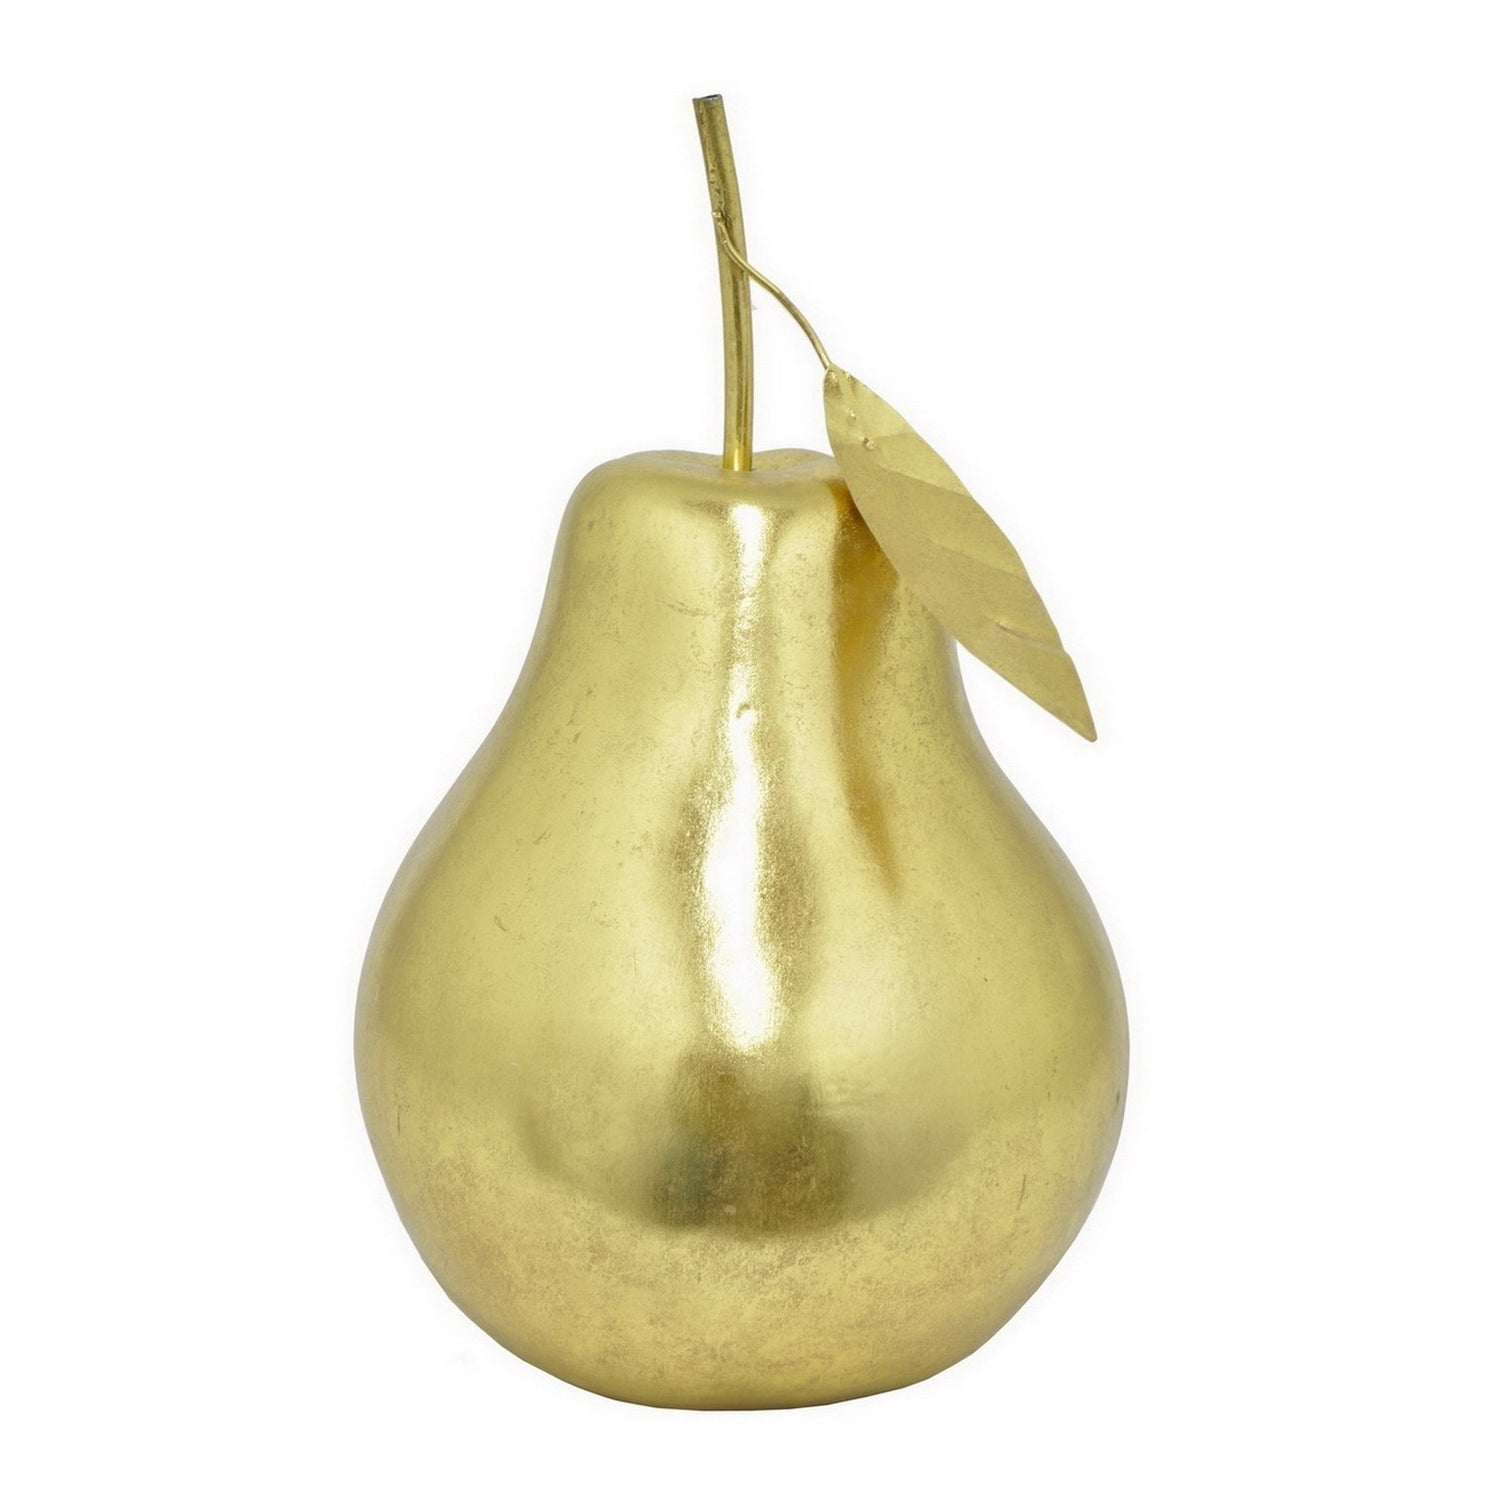 Three Hands Decorative Gold Resin Pear - Free Shipping Today ...